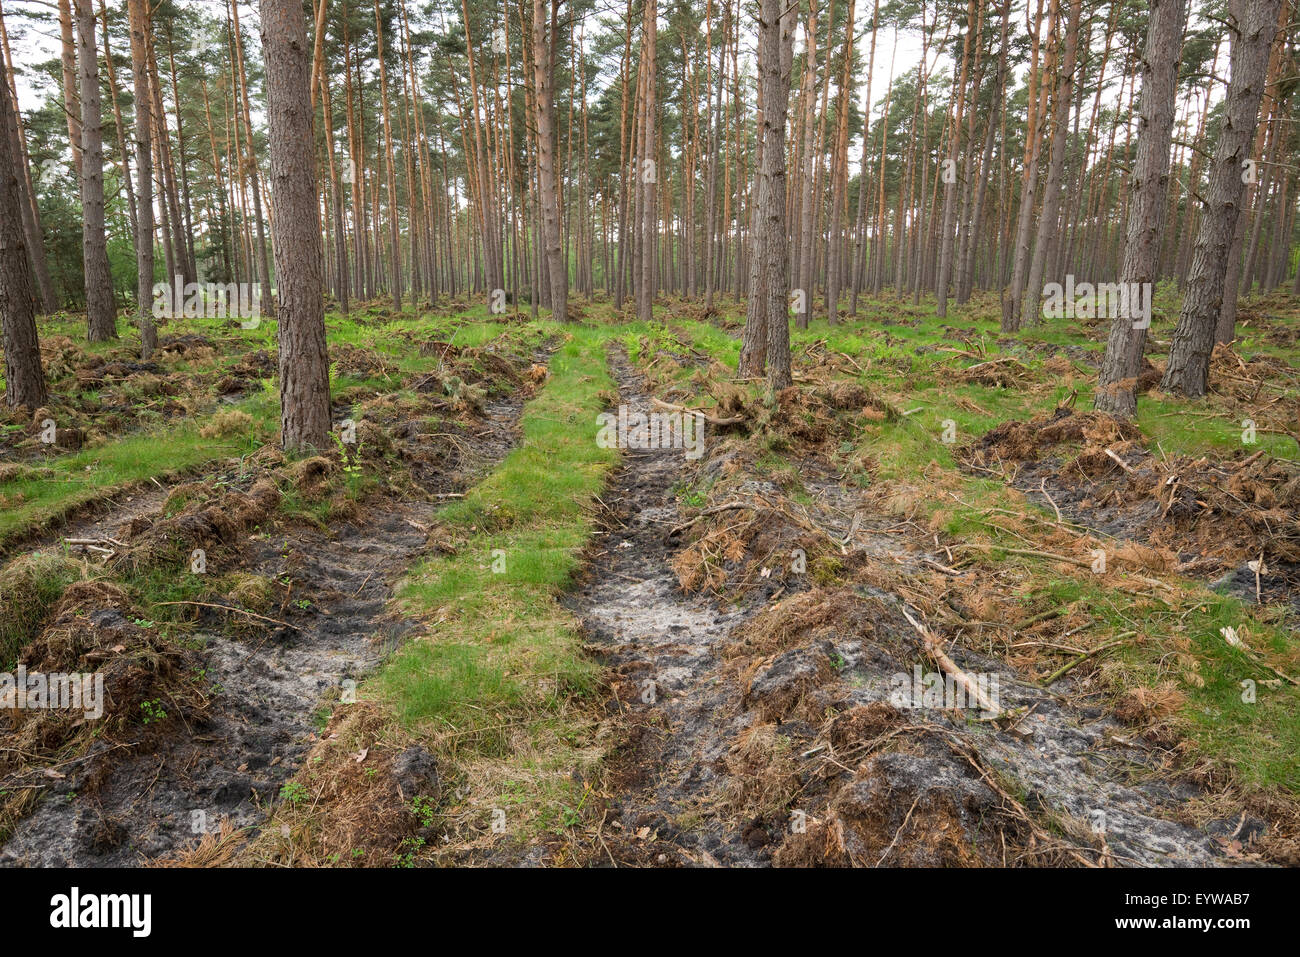 Soil preparation for natural regeneration, exposing the mineral soil in a pine forest, Pines (Pinus sylvestris), - Stock Image